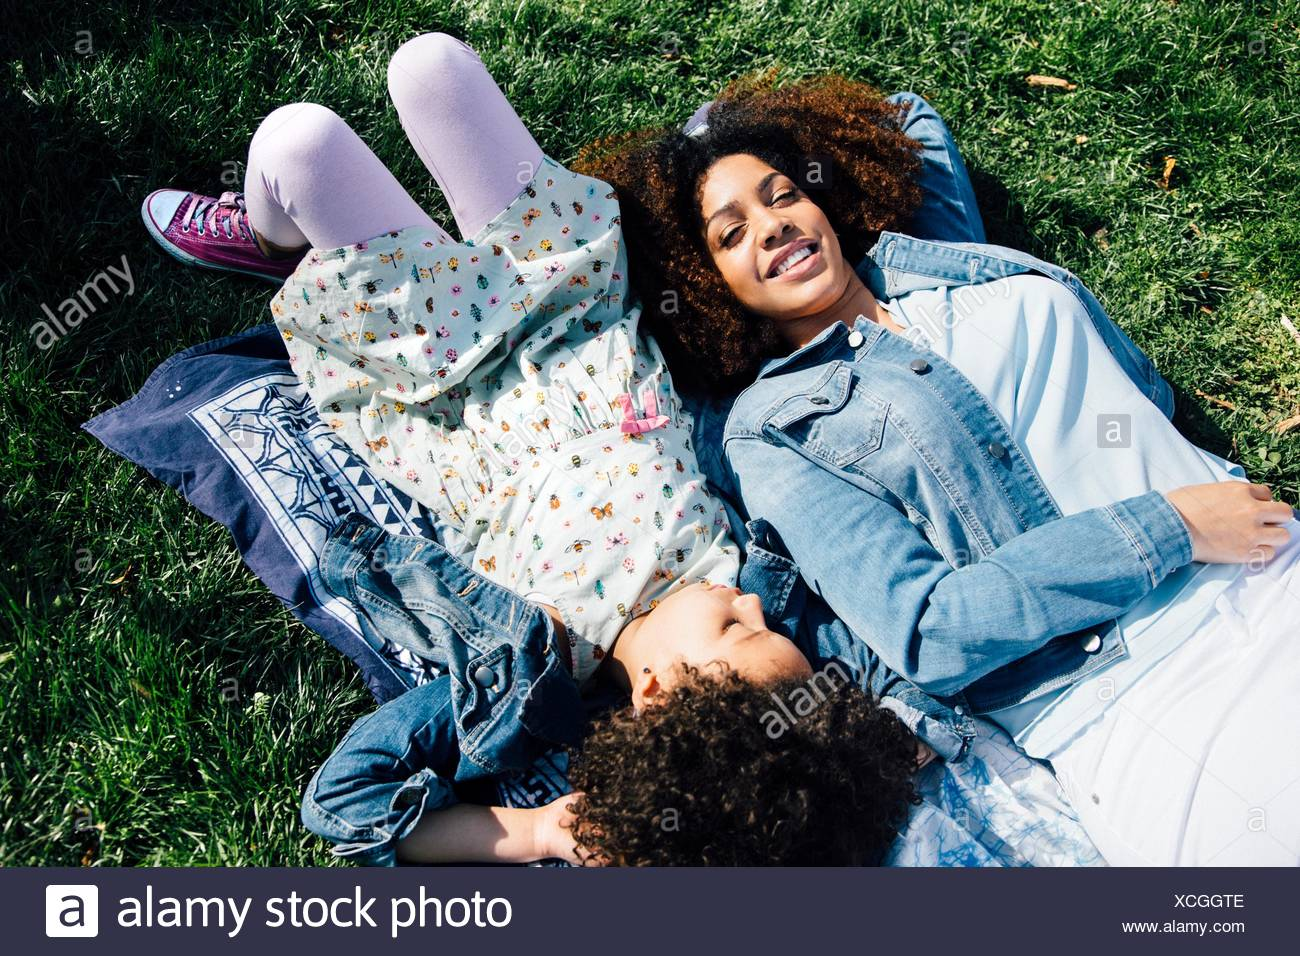 High angle view of mother and daughter lying side by side on backs, eyes closed - Stock Image